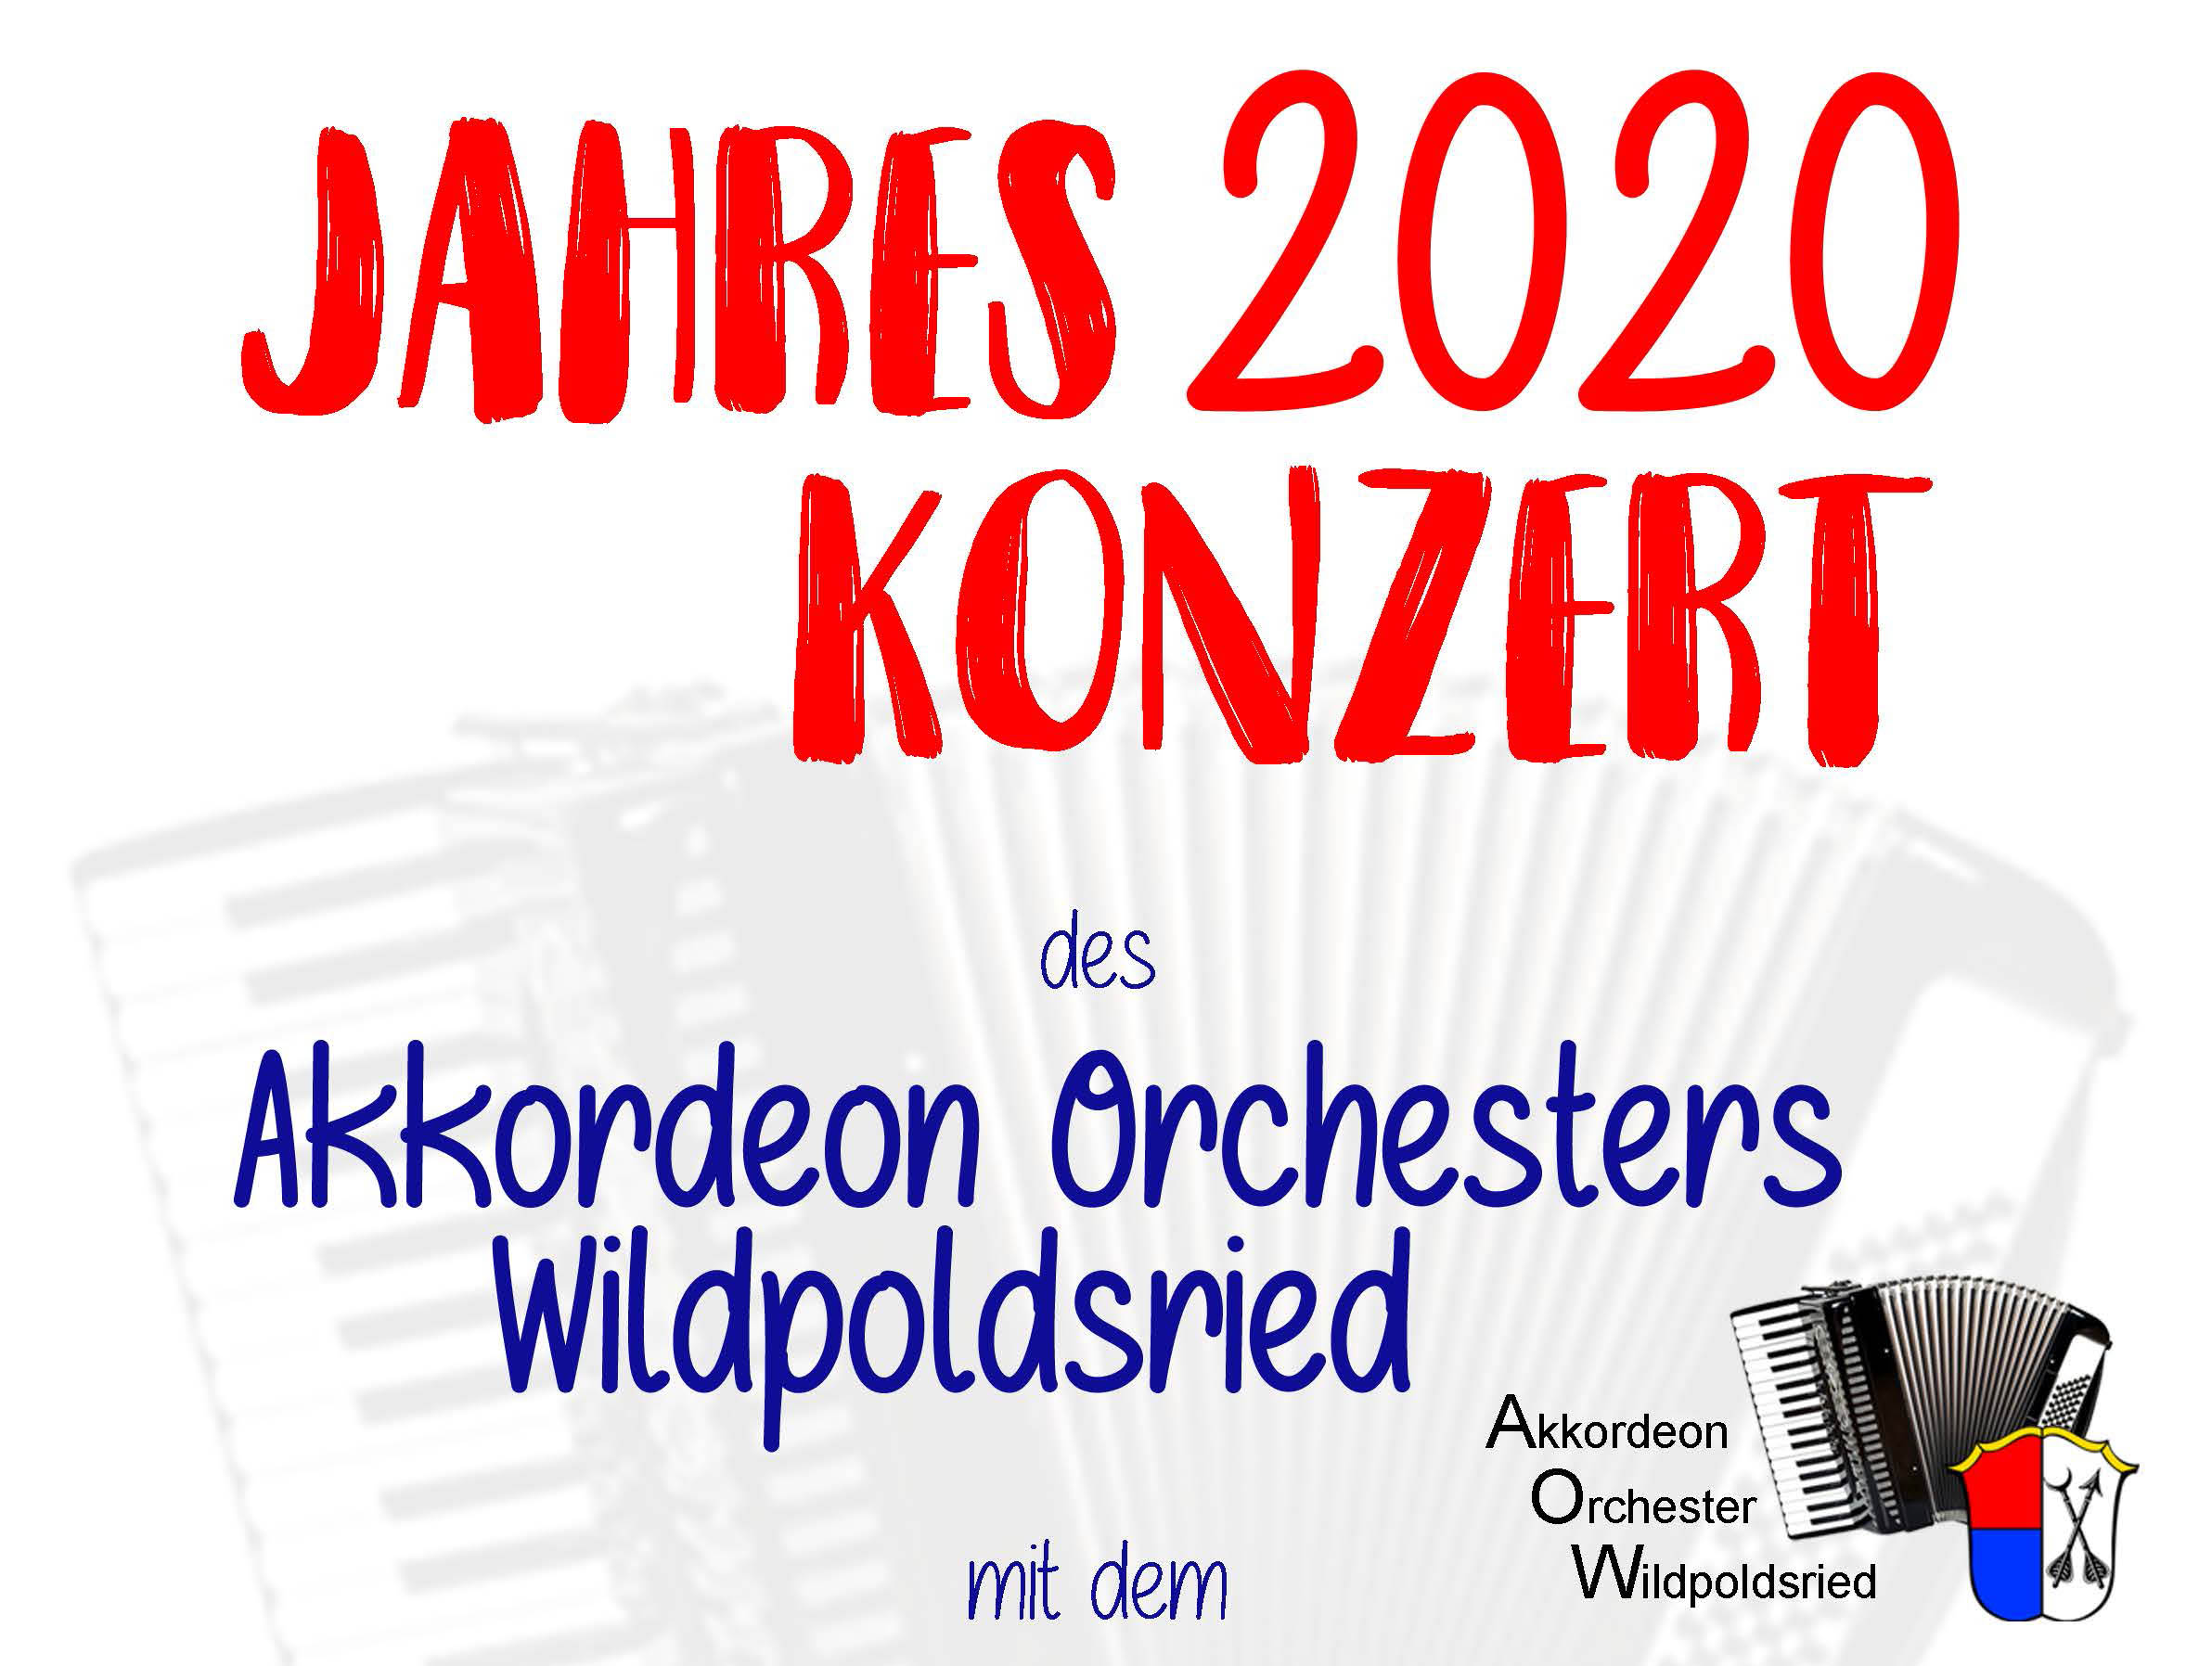 Akkordeon Orchester am 8.2.2020